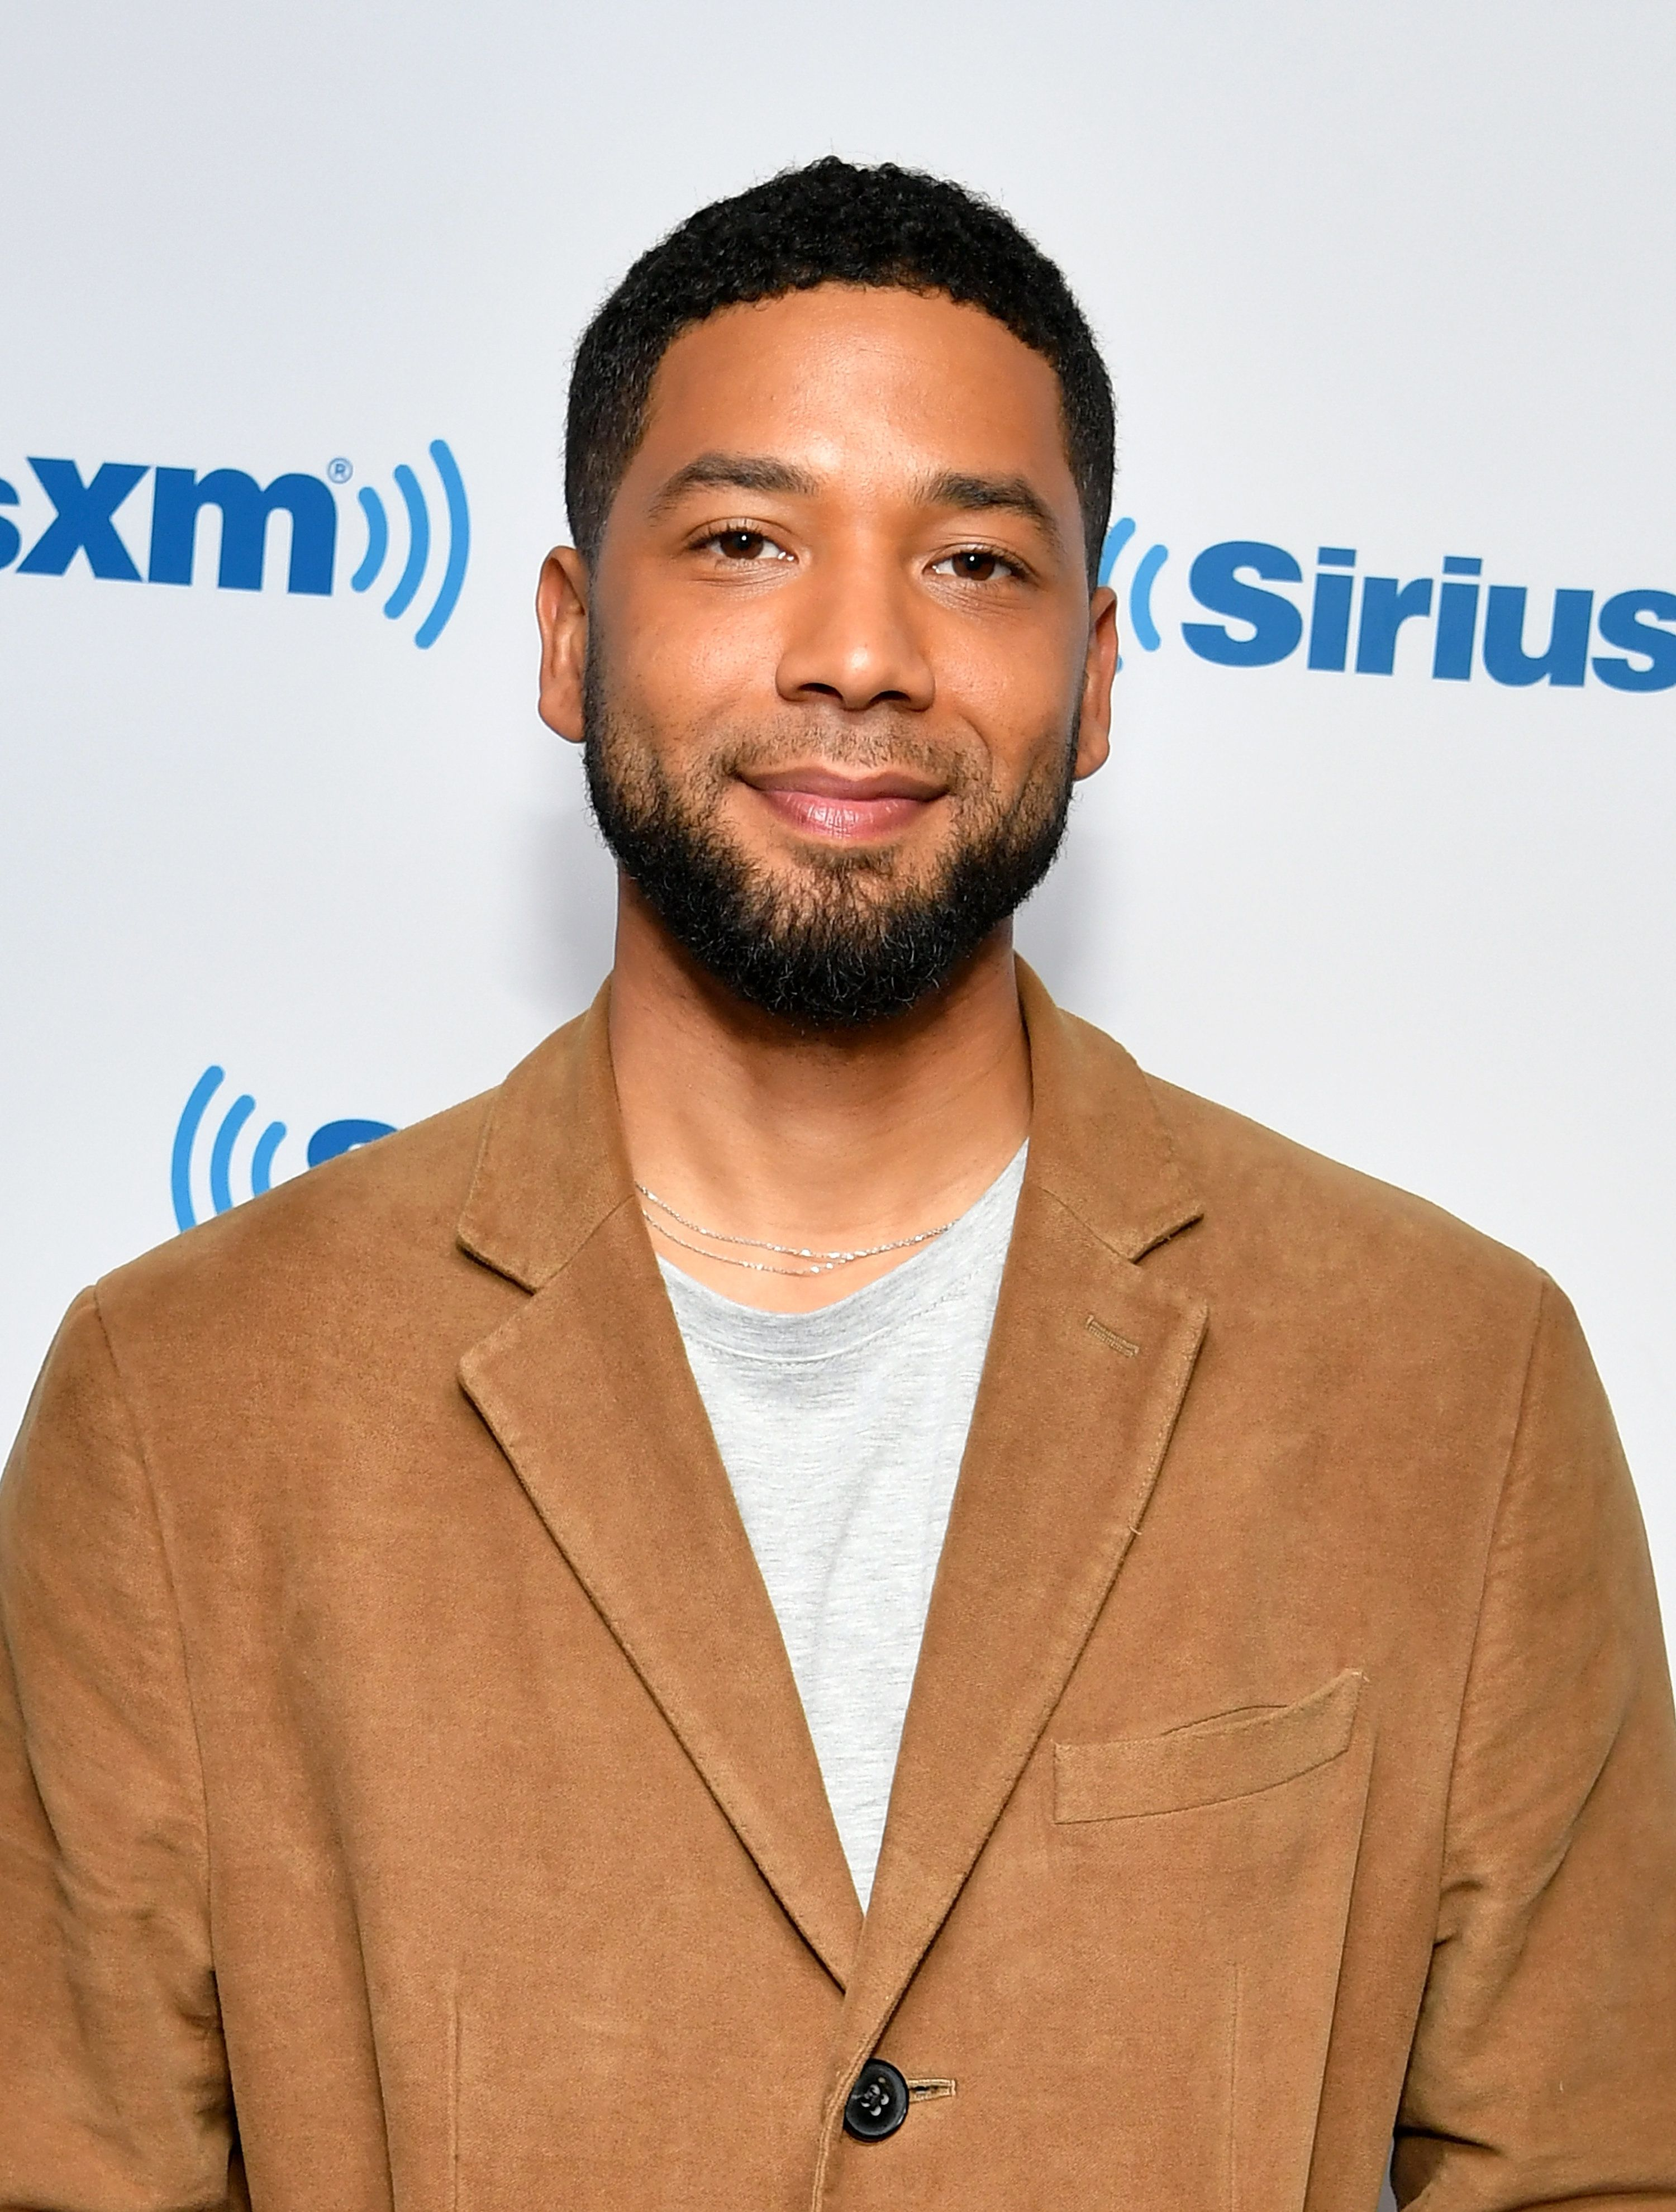 NEW YORK, NY - NOVEMBER 14:  (EXCLUSIVE COVERAGE) Actor Jussie Smollett visits SiriusXM Studios on November 14, 2018 in New York City.  (Photo by Slaven Vlasic/Getty Images)